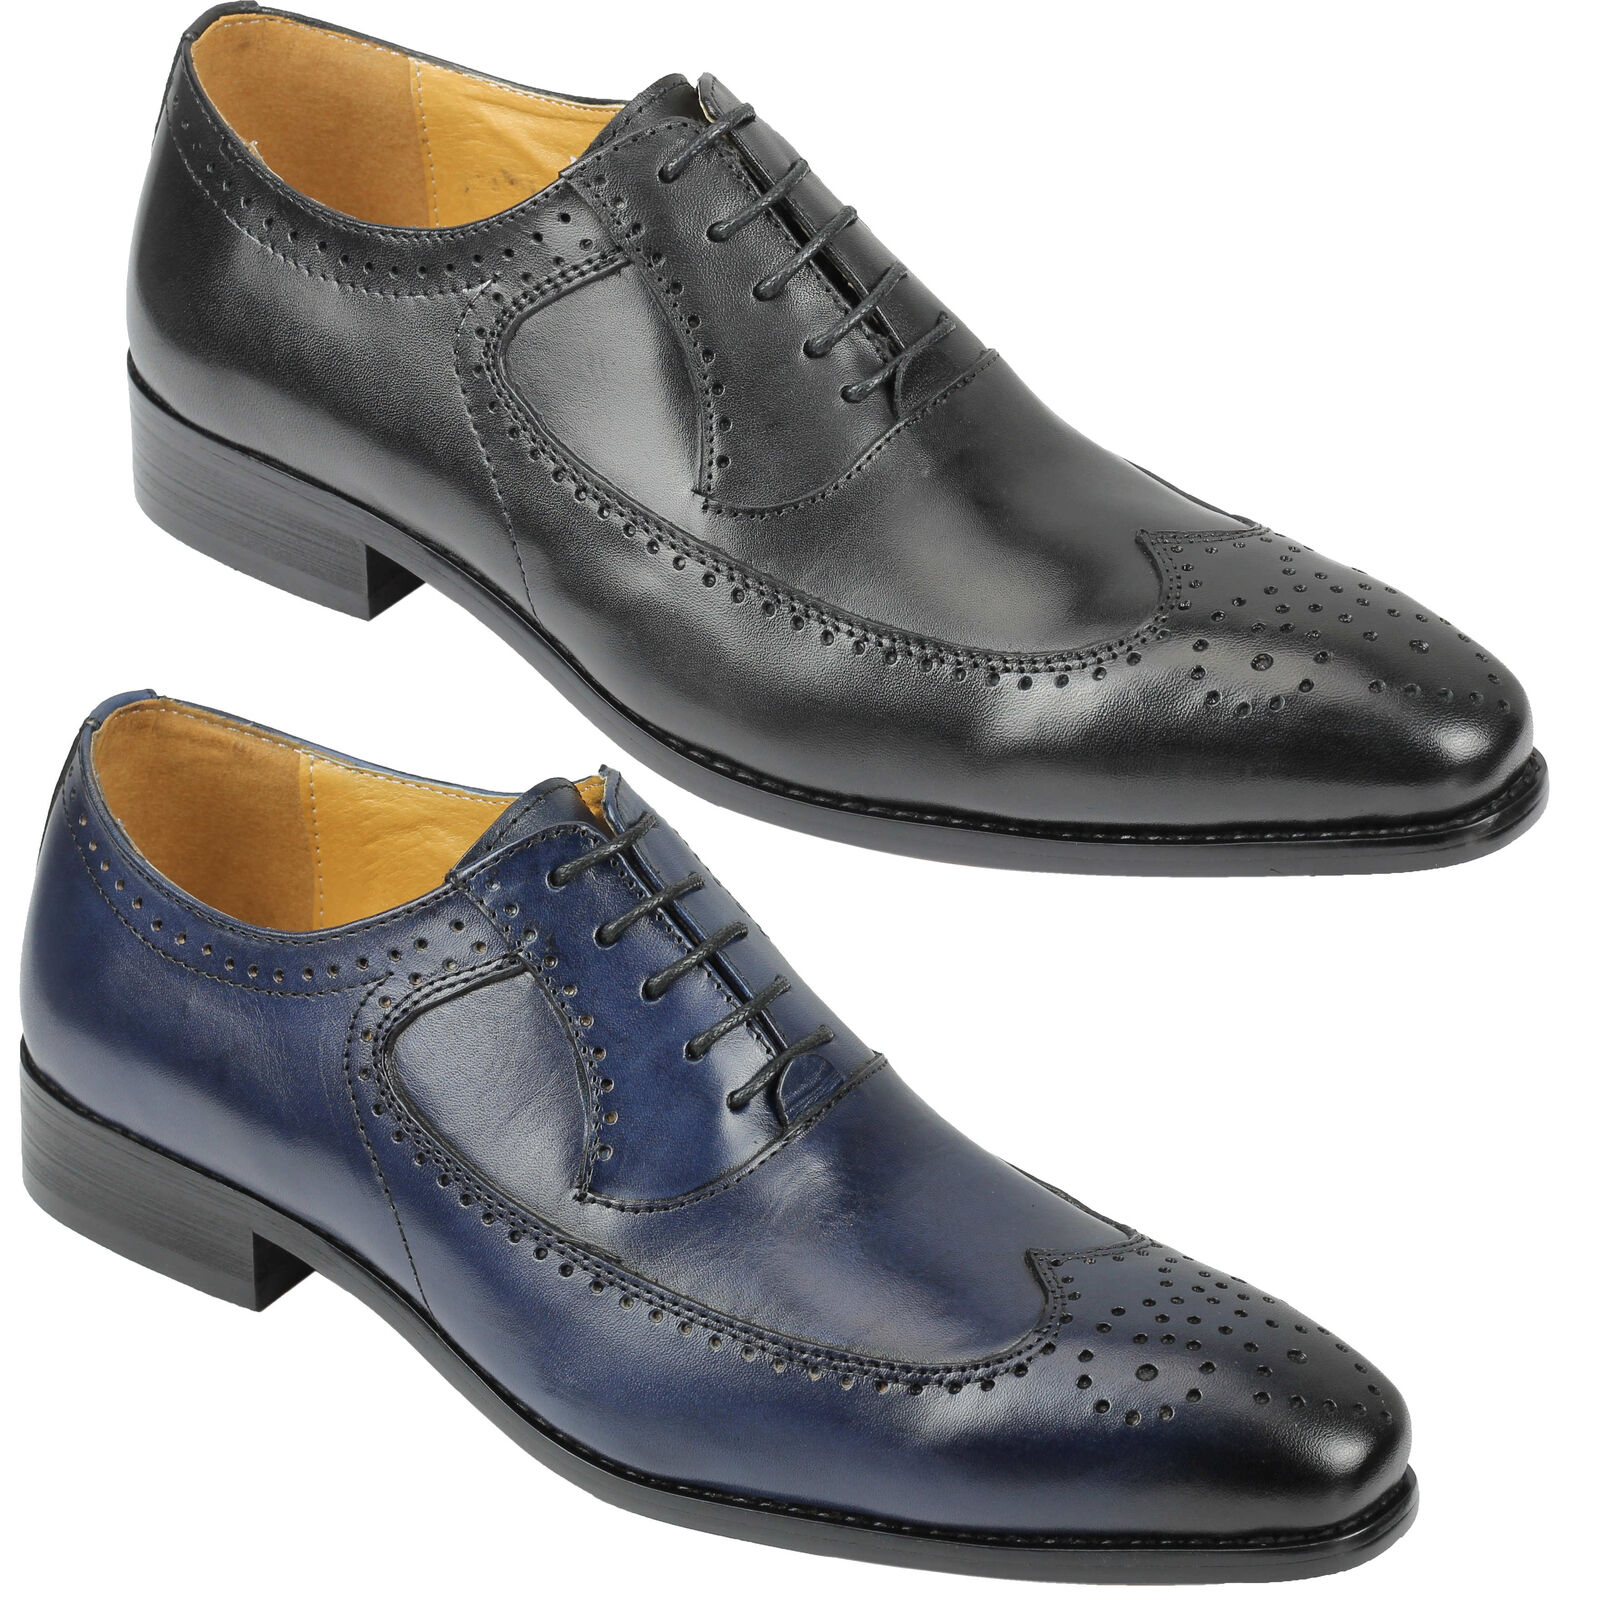 Mens Genuine Real Leather Lace up Brogue Vintage Style Shoes 6 7 8 9 10 11 11.5